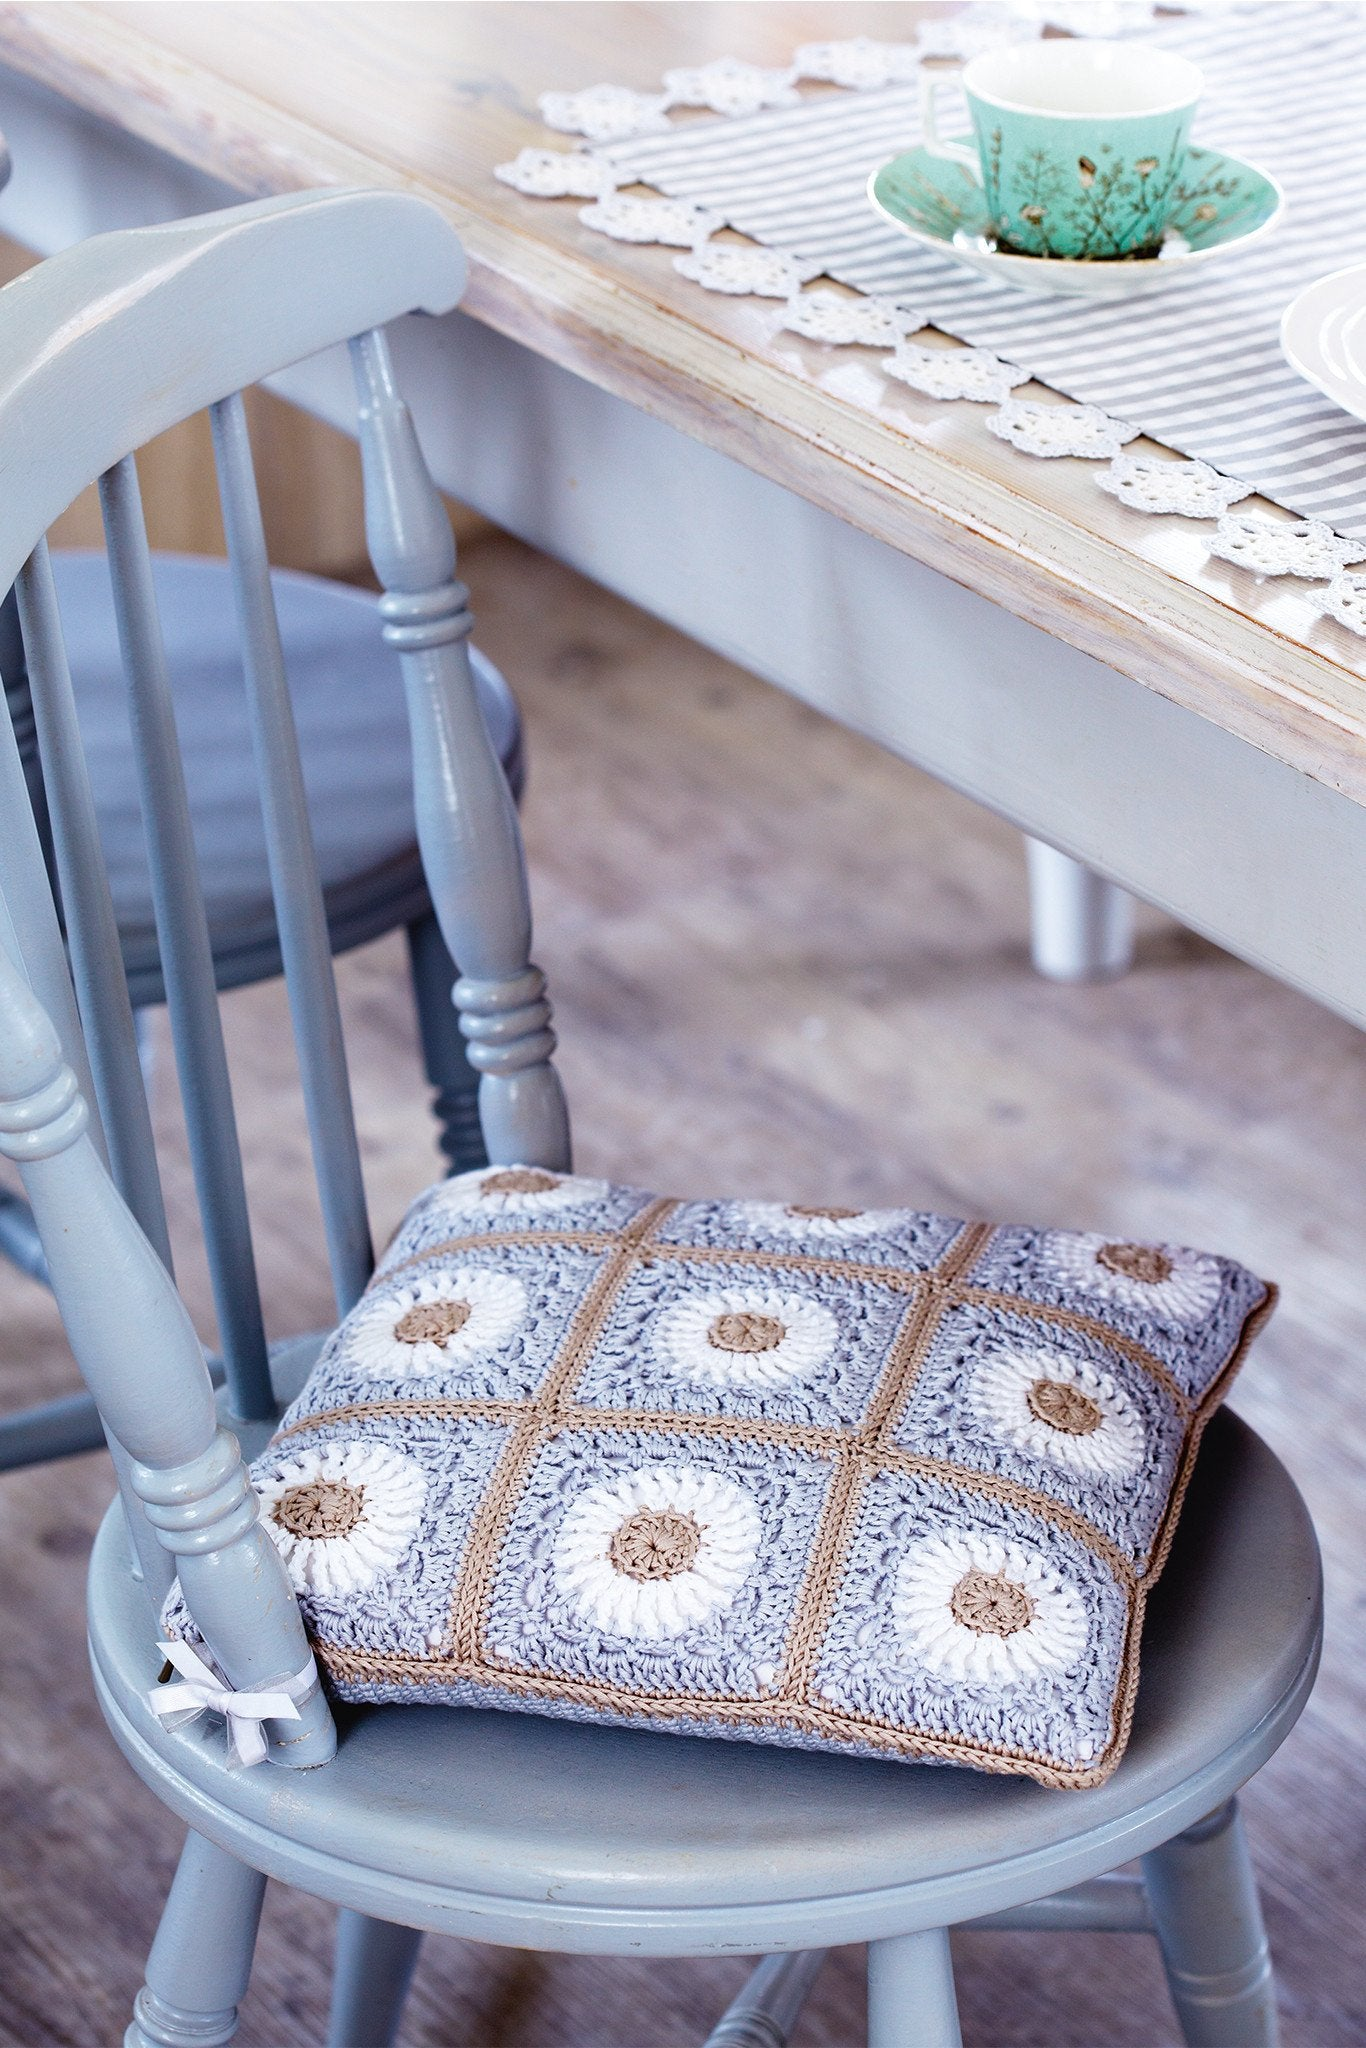 Seat Cushion Cover Crochet Pattern – The Knitting Network